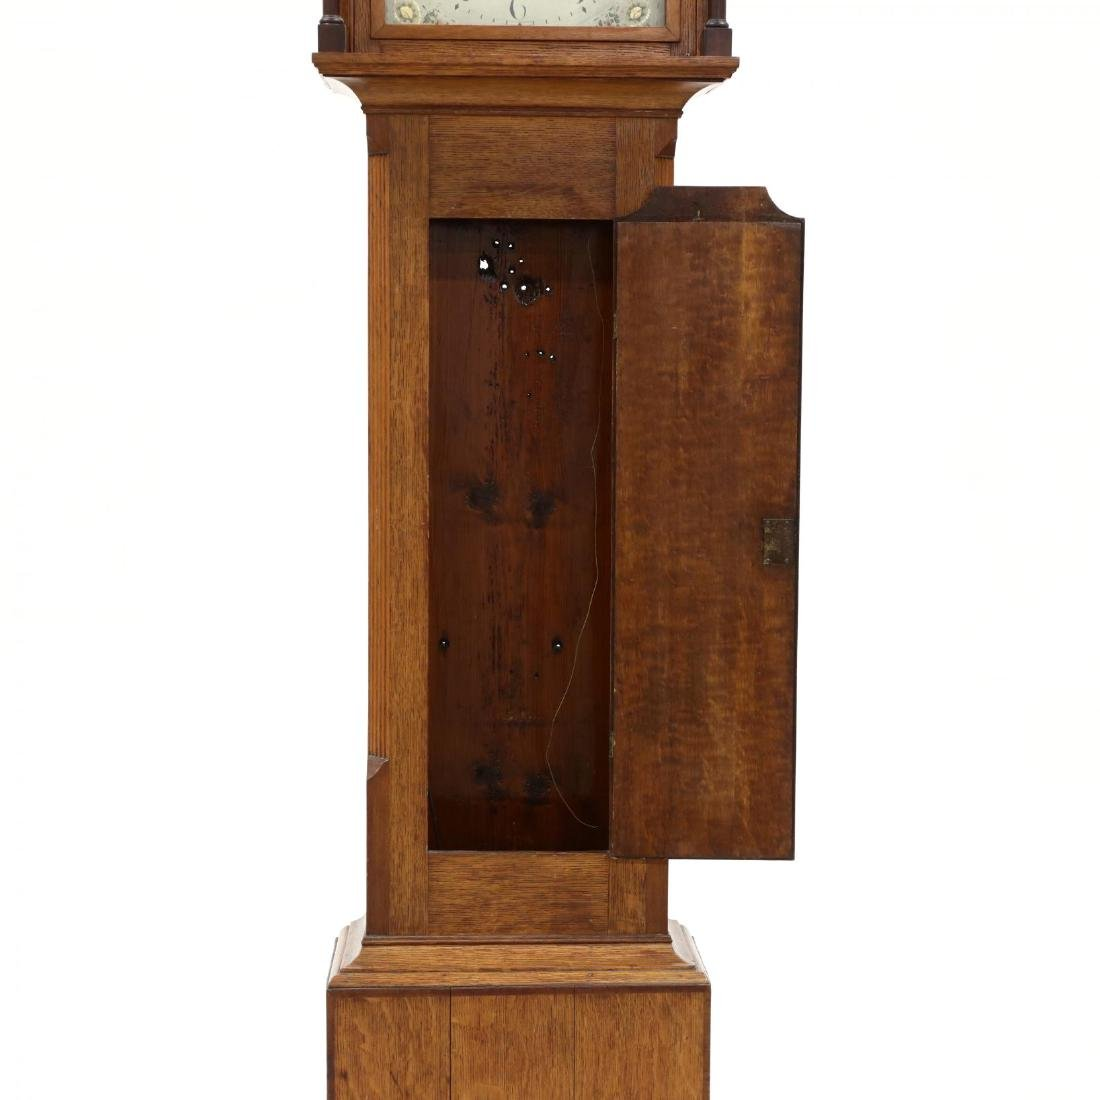 English Inlaid Oak Tall Case Clock, Haynes, Stamford - 4